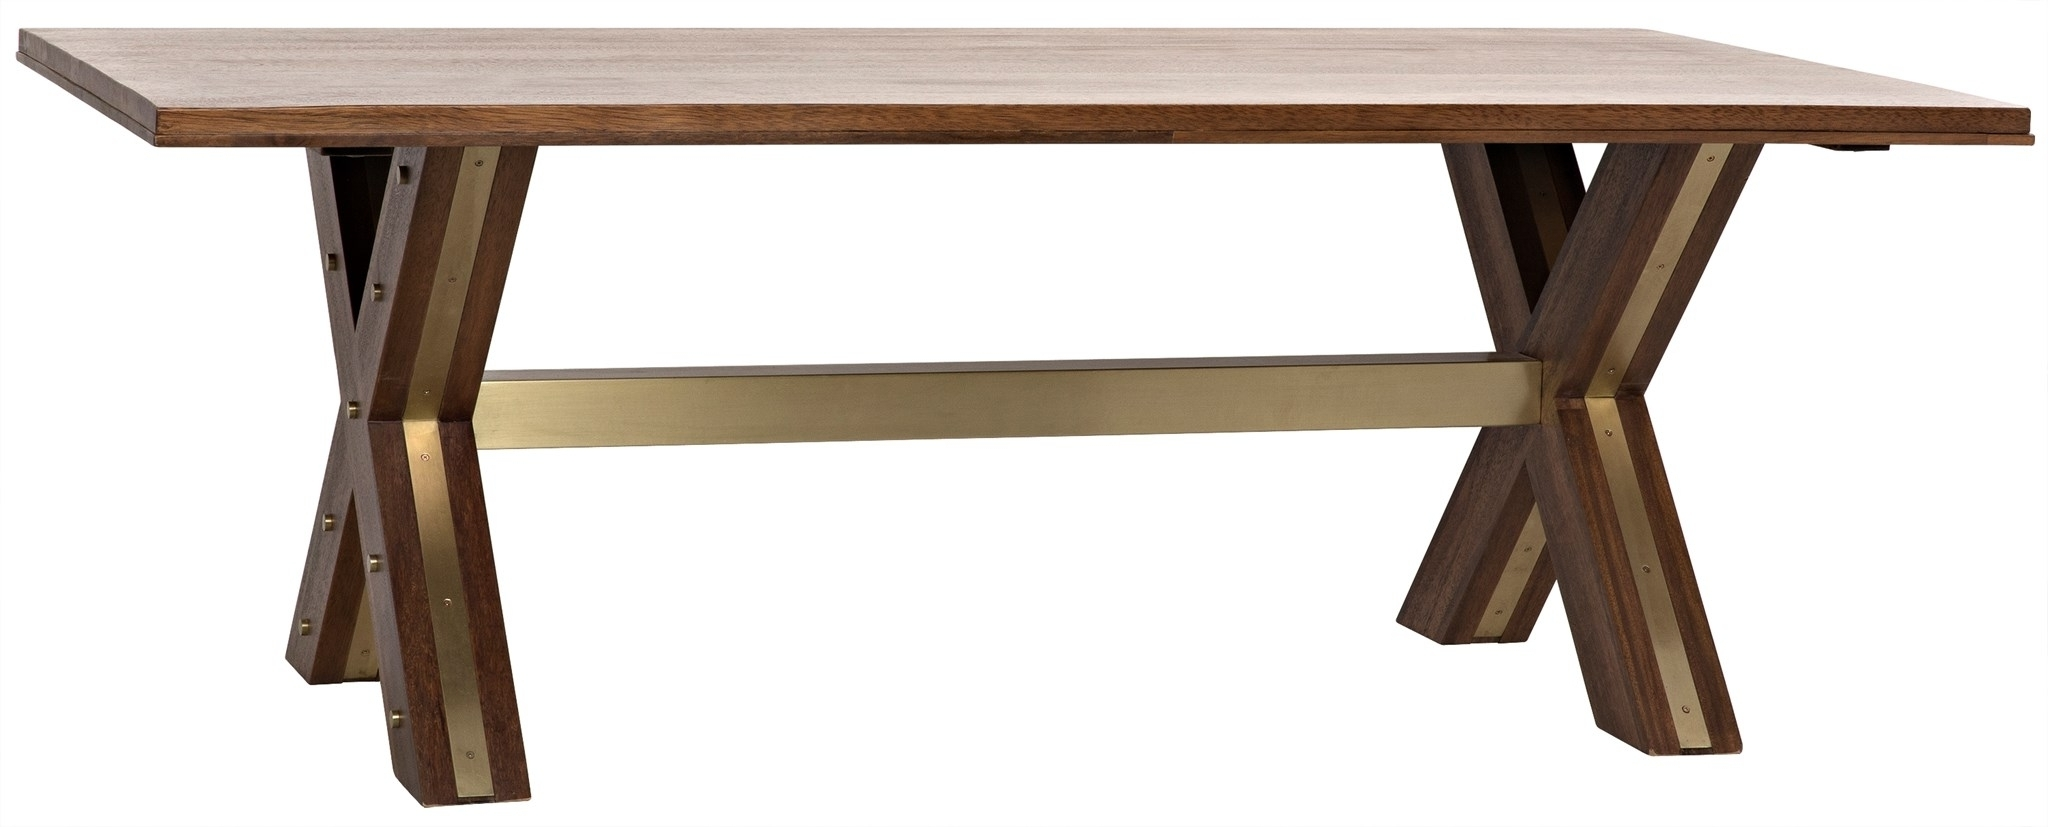 "Long Dining Tables With Newest 84"" Long Dining Table Solid Walnut Wood Dark Brown Finish Brass (View 14 of 25)"